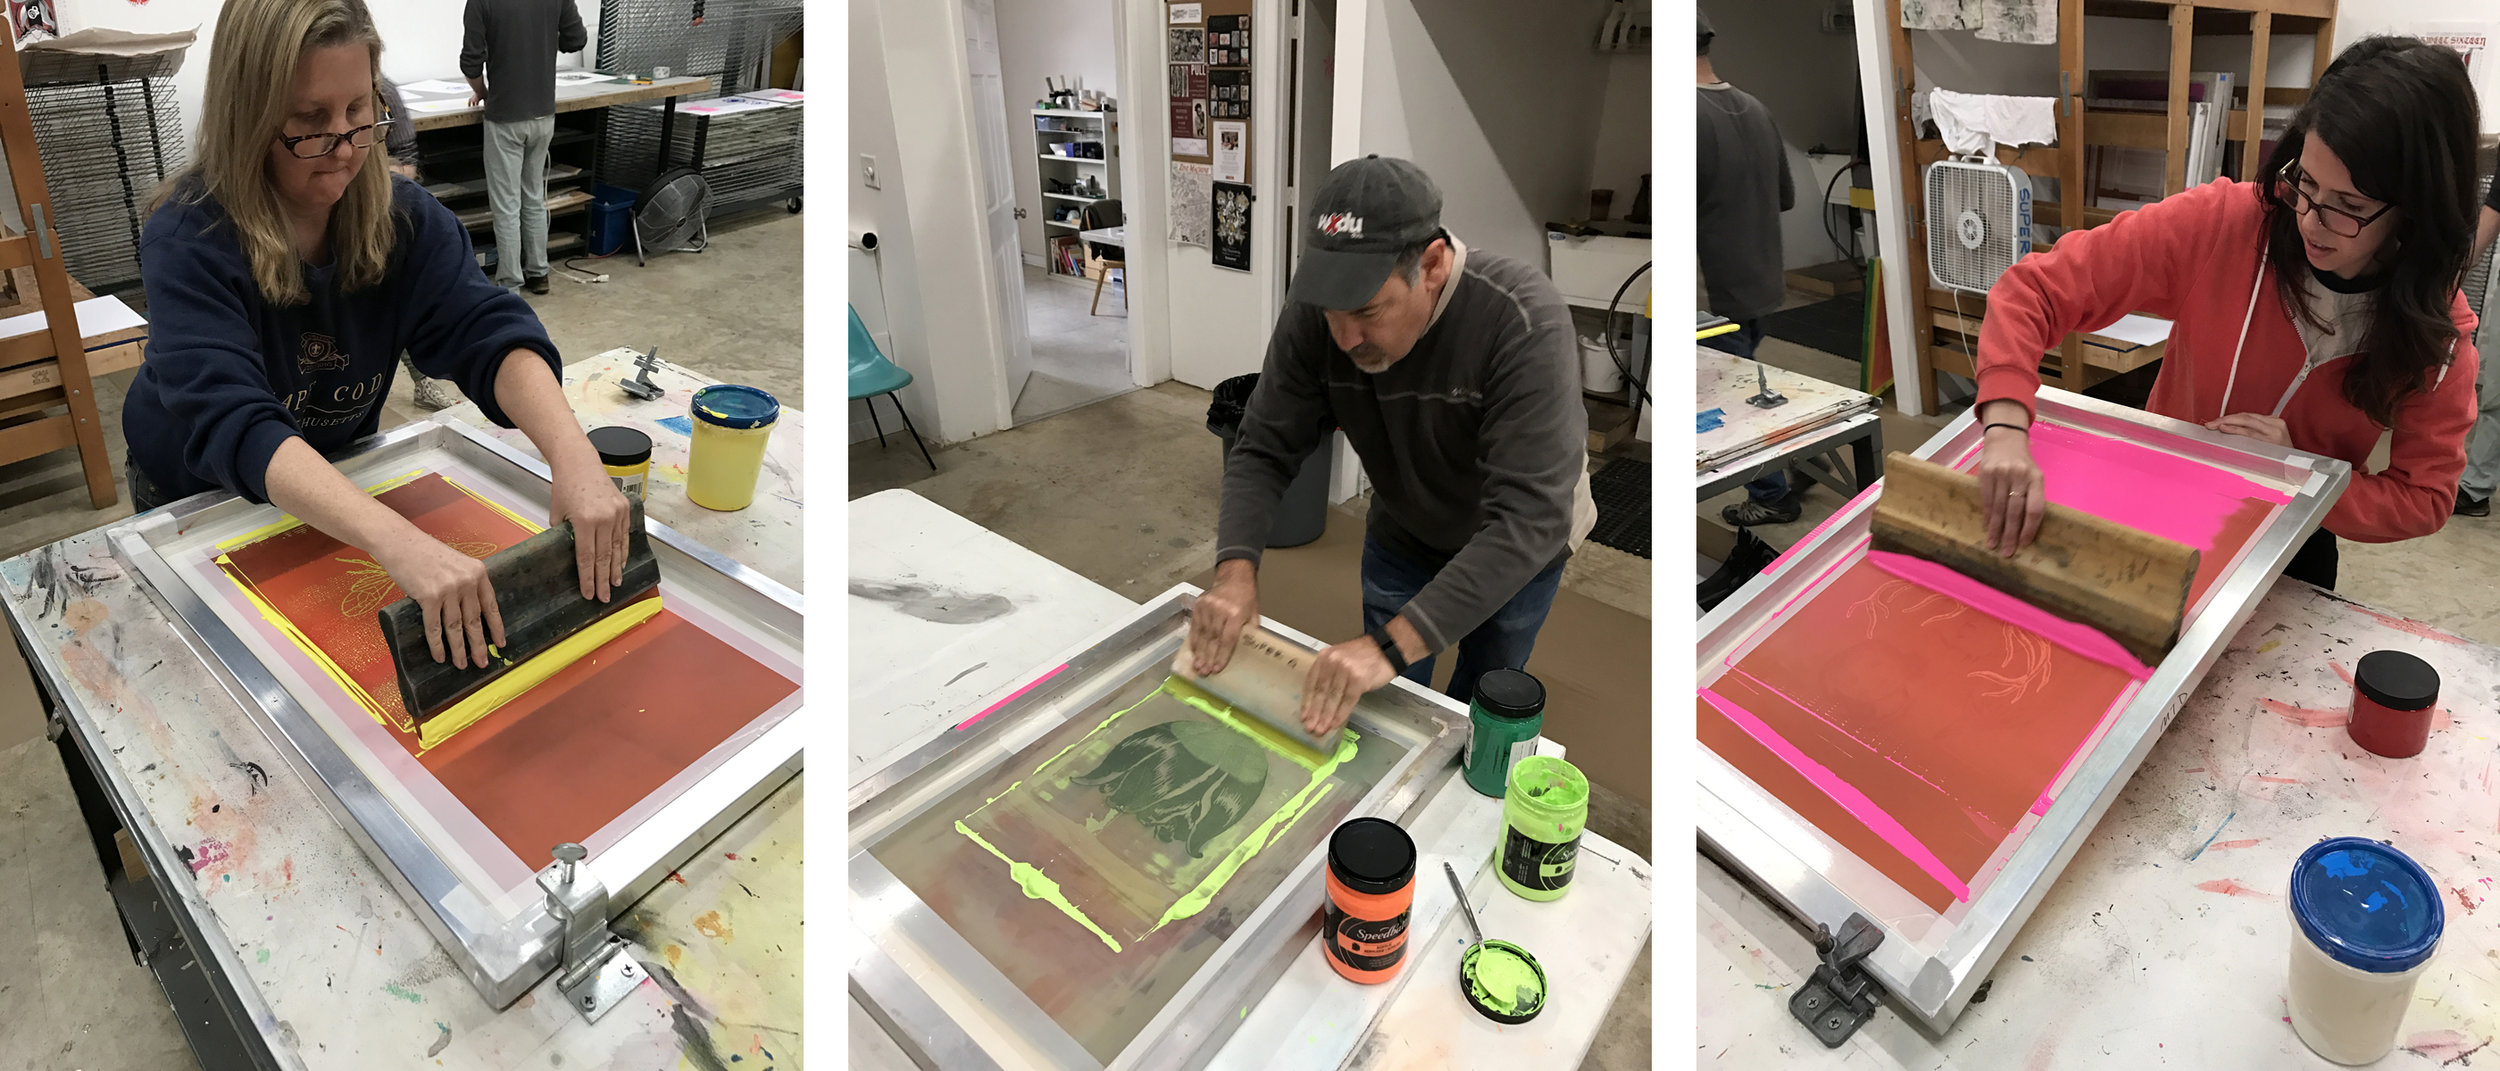 Melody, Robby and Kate screen printing at our recent workshop at Super G Print Lab on Saturday, December 3rd.